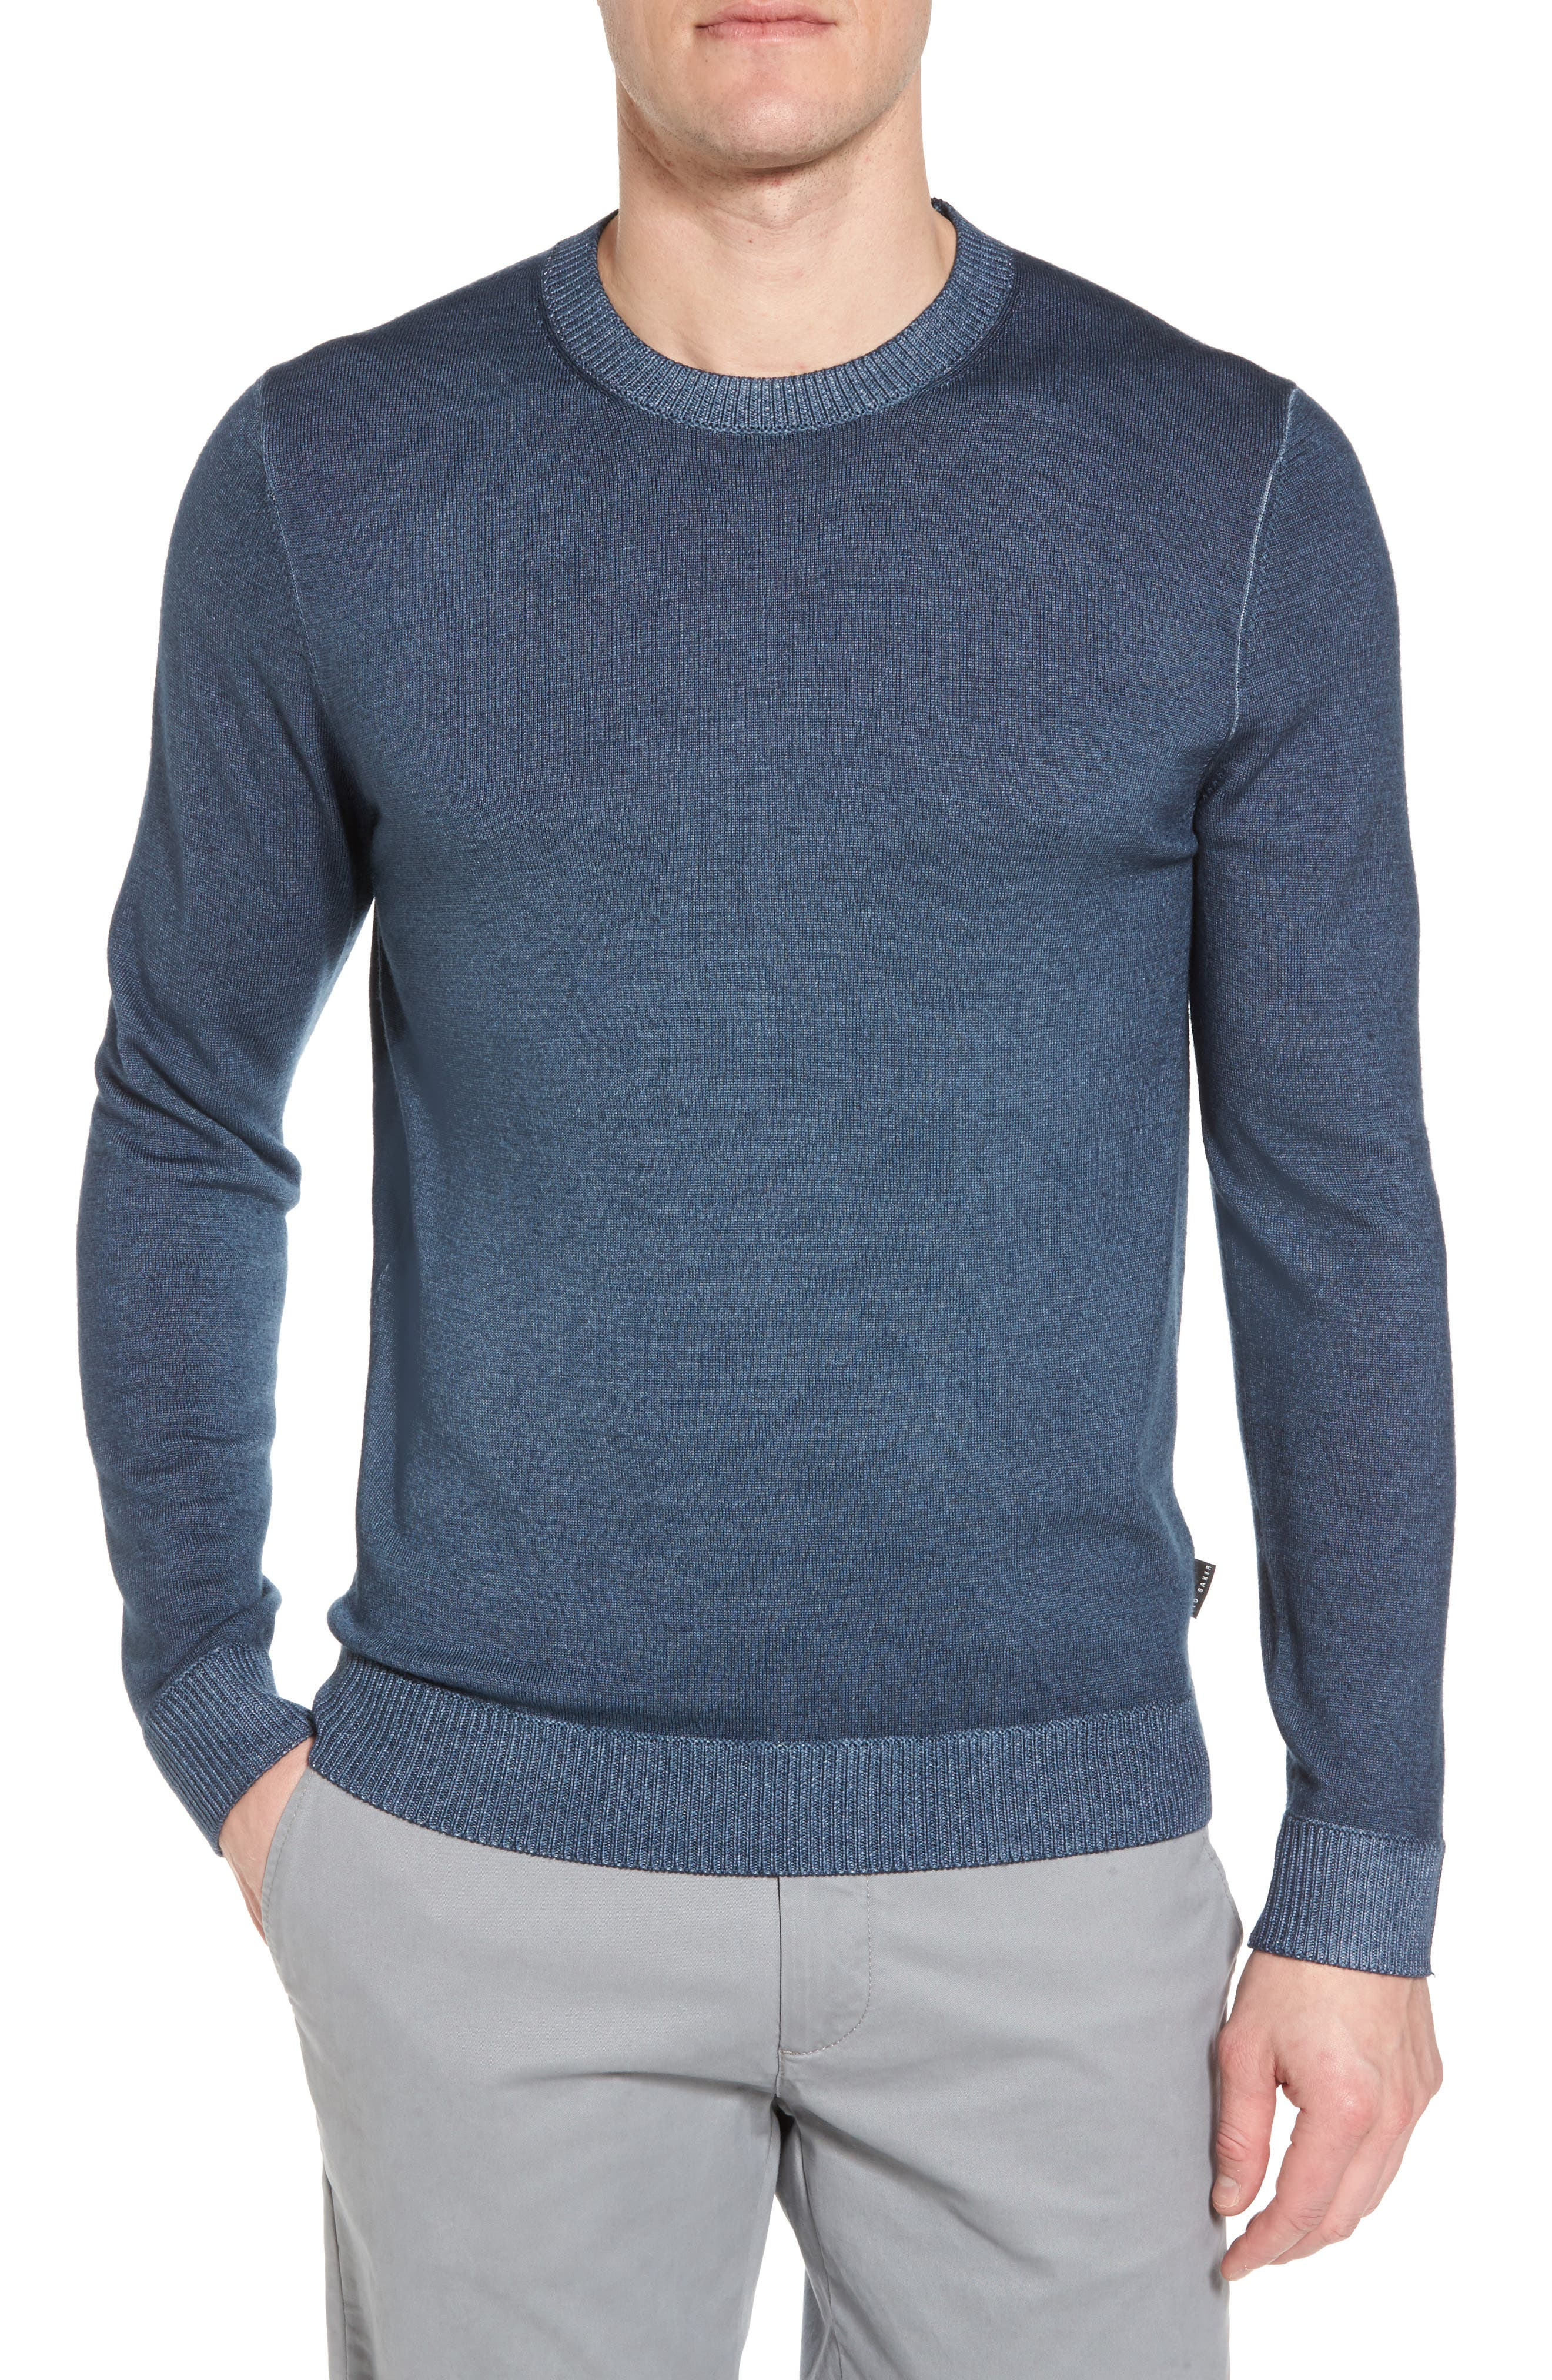 Lucky Trim Fit Wool Sweater,                             Main thumbnail 1, color,                             420